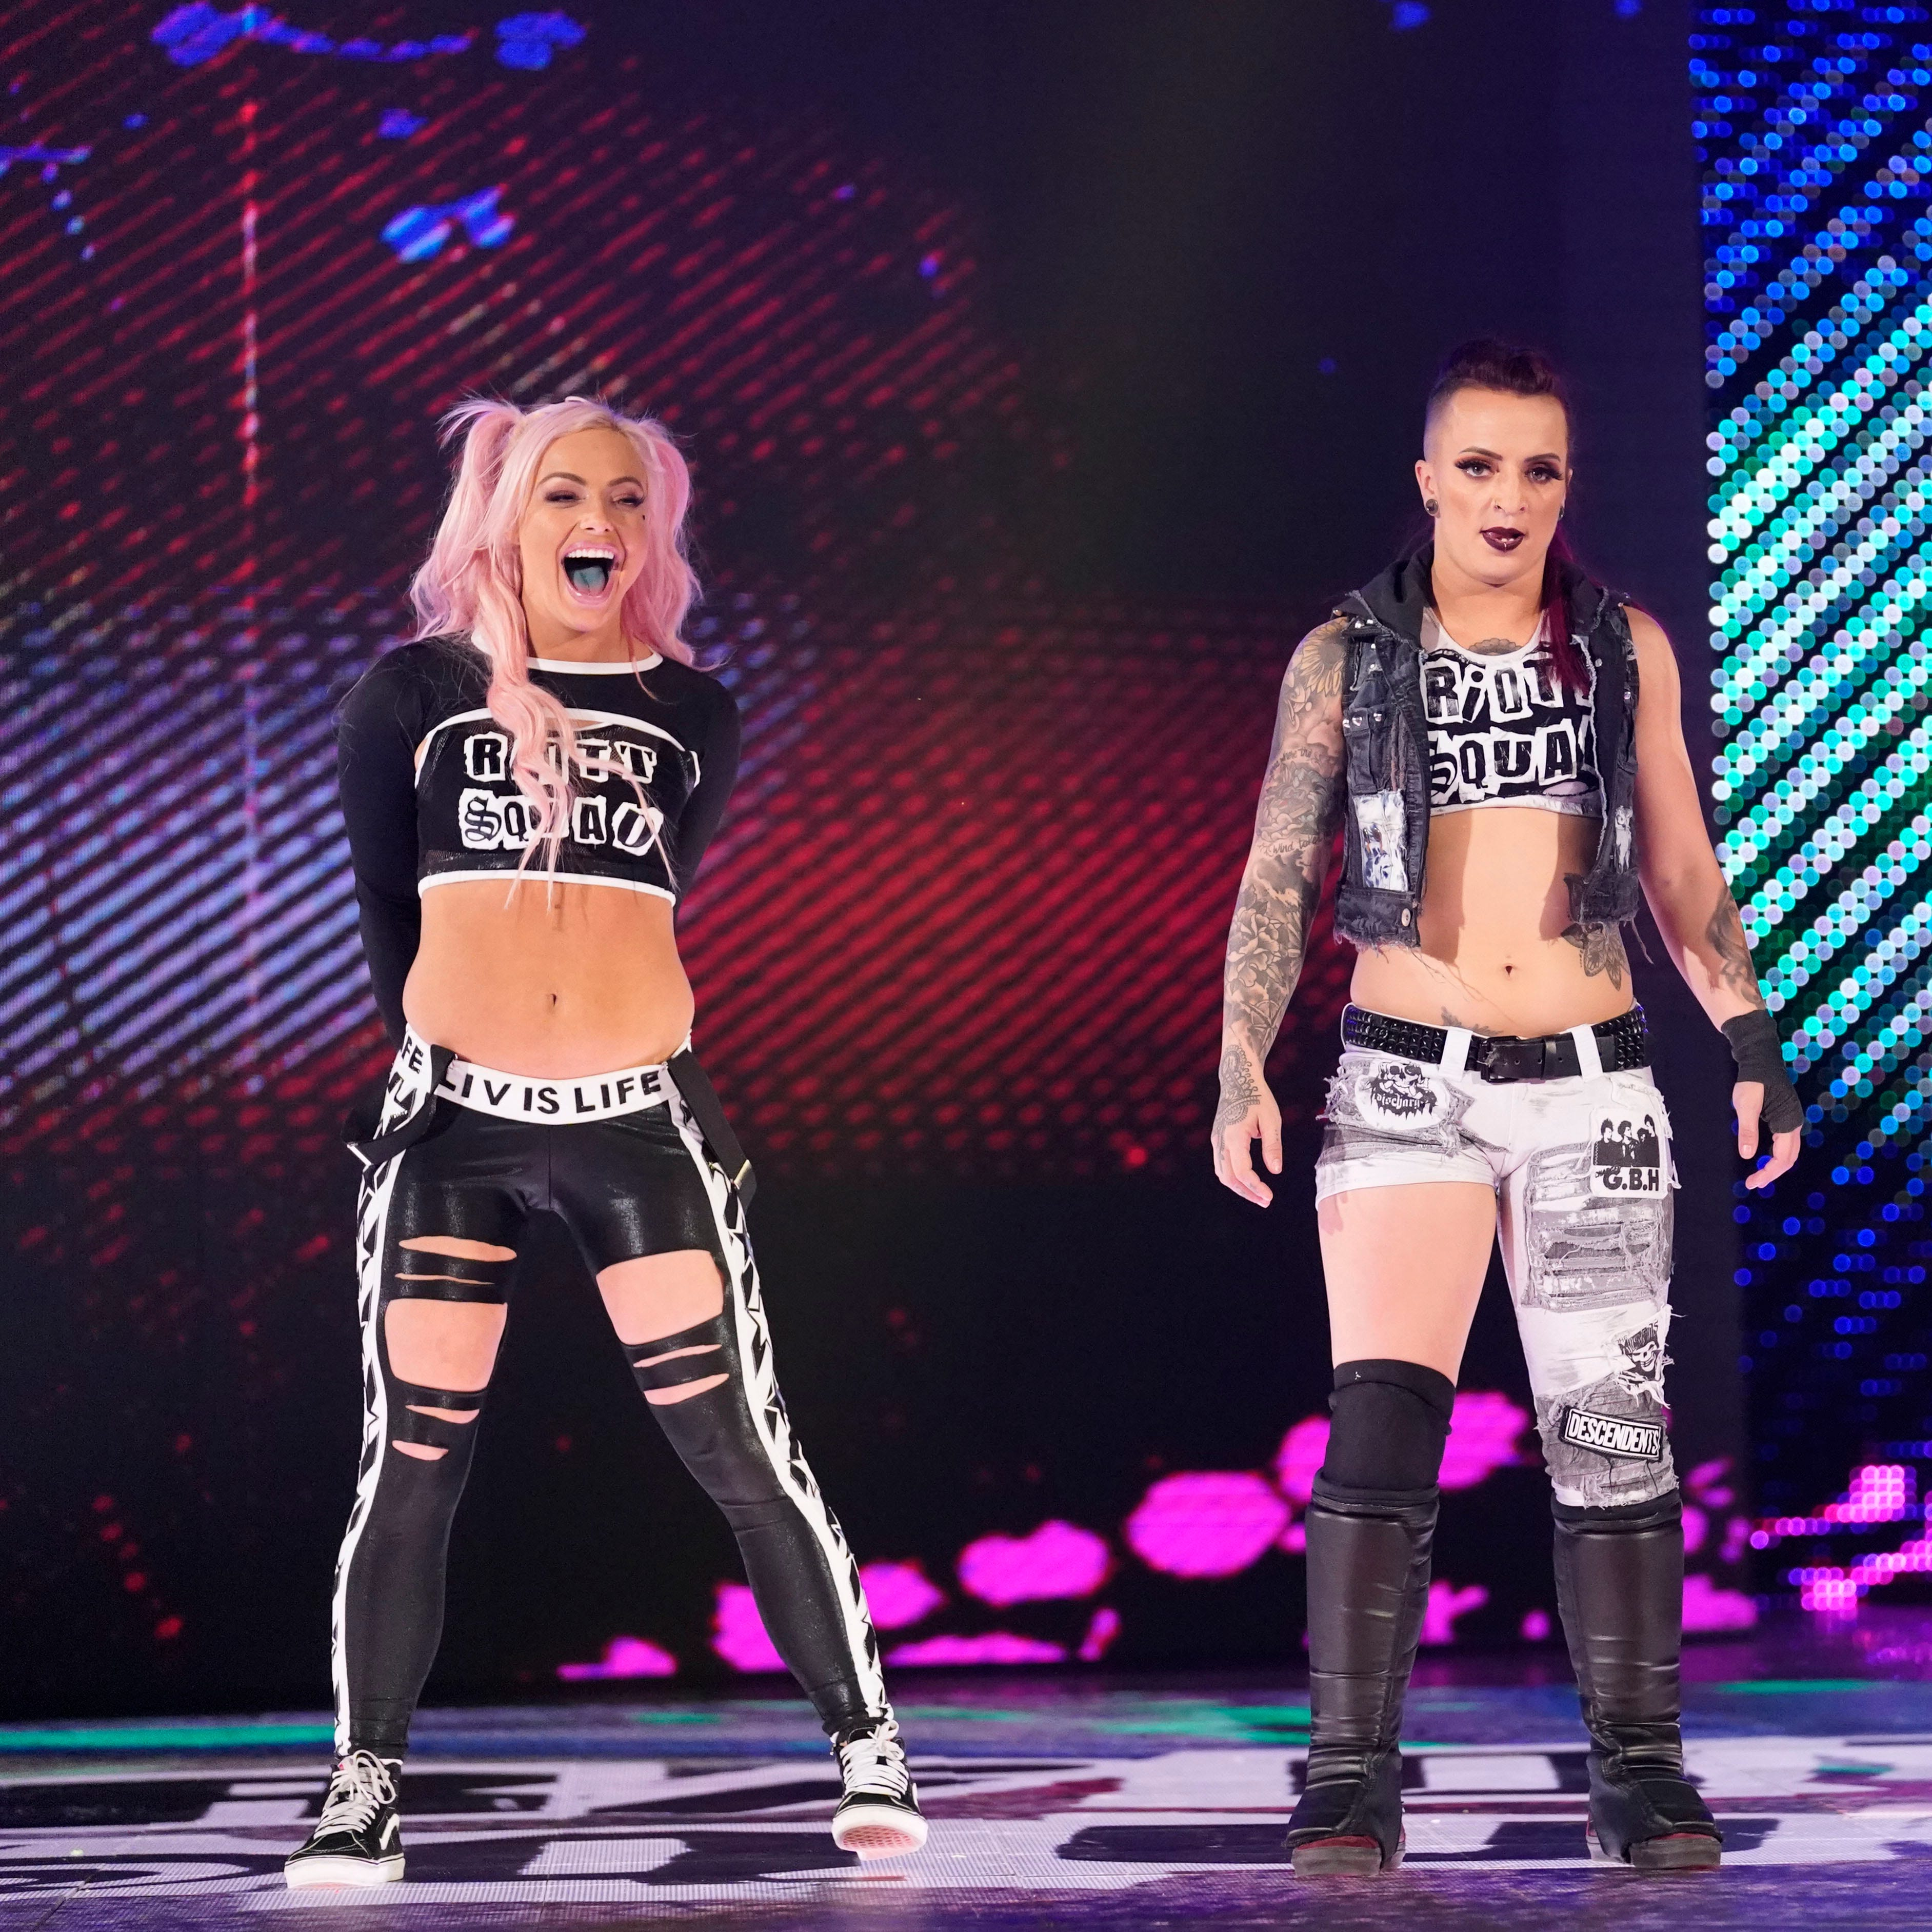 Liv Morgan, Sonya Deville and the New Jersey women at the heart of WWE's evolution